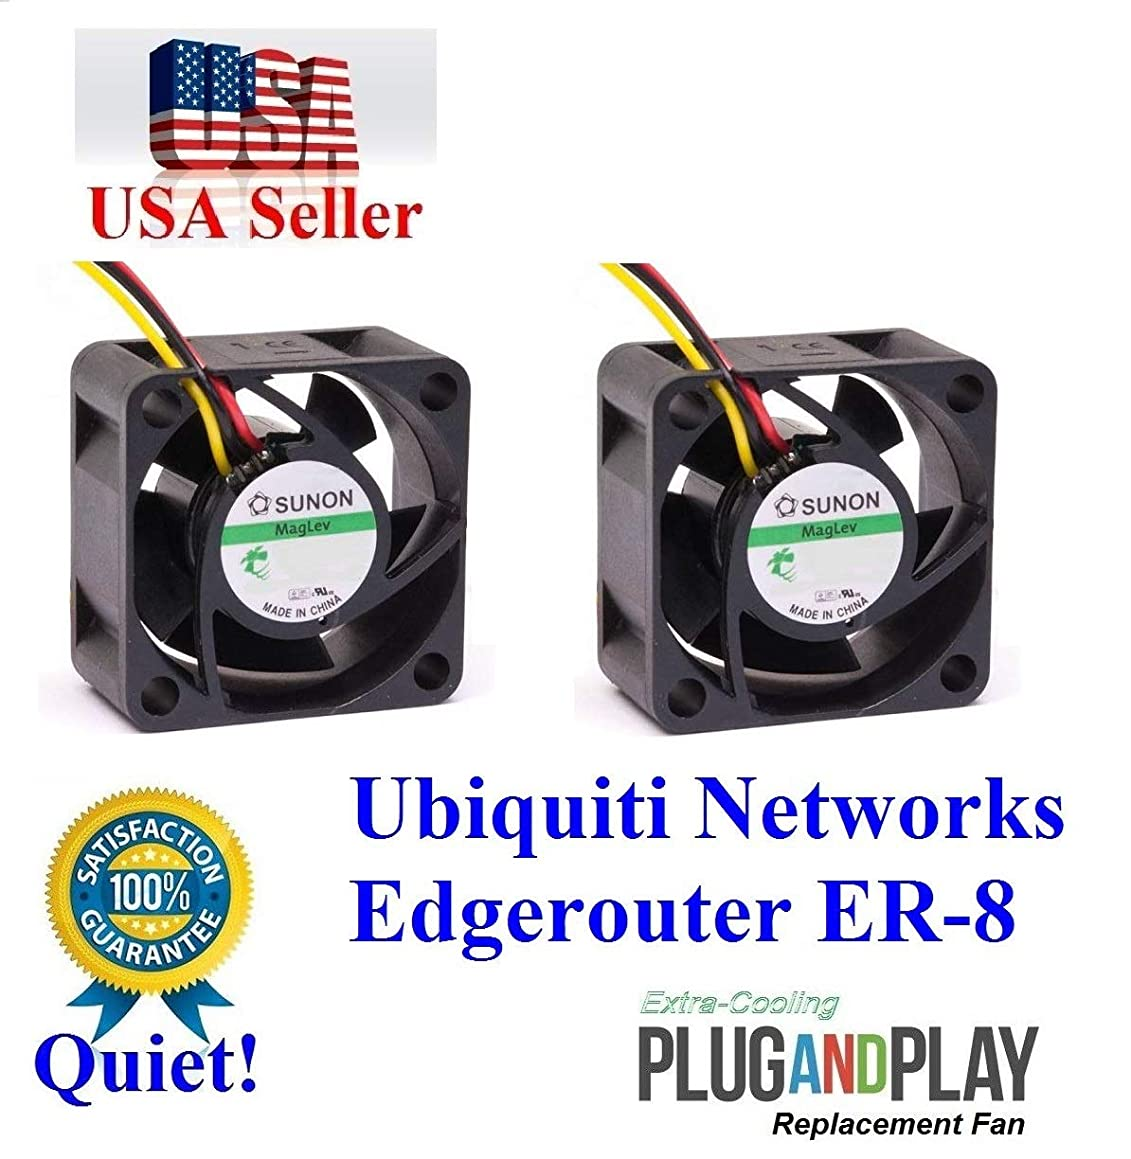 2X Quiet Version Fans for Ubiquiti UniFi EdgerRouter ER-8 only 13dBA Noise Each Fan, Best for Home Networking!